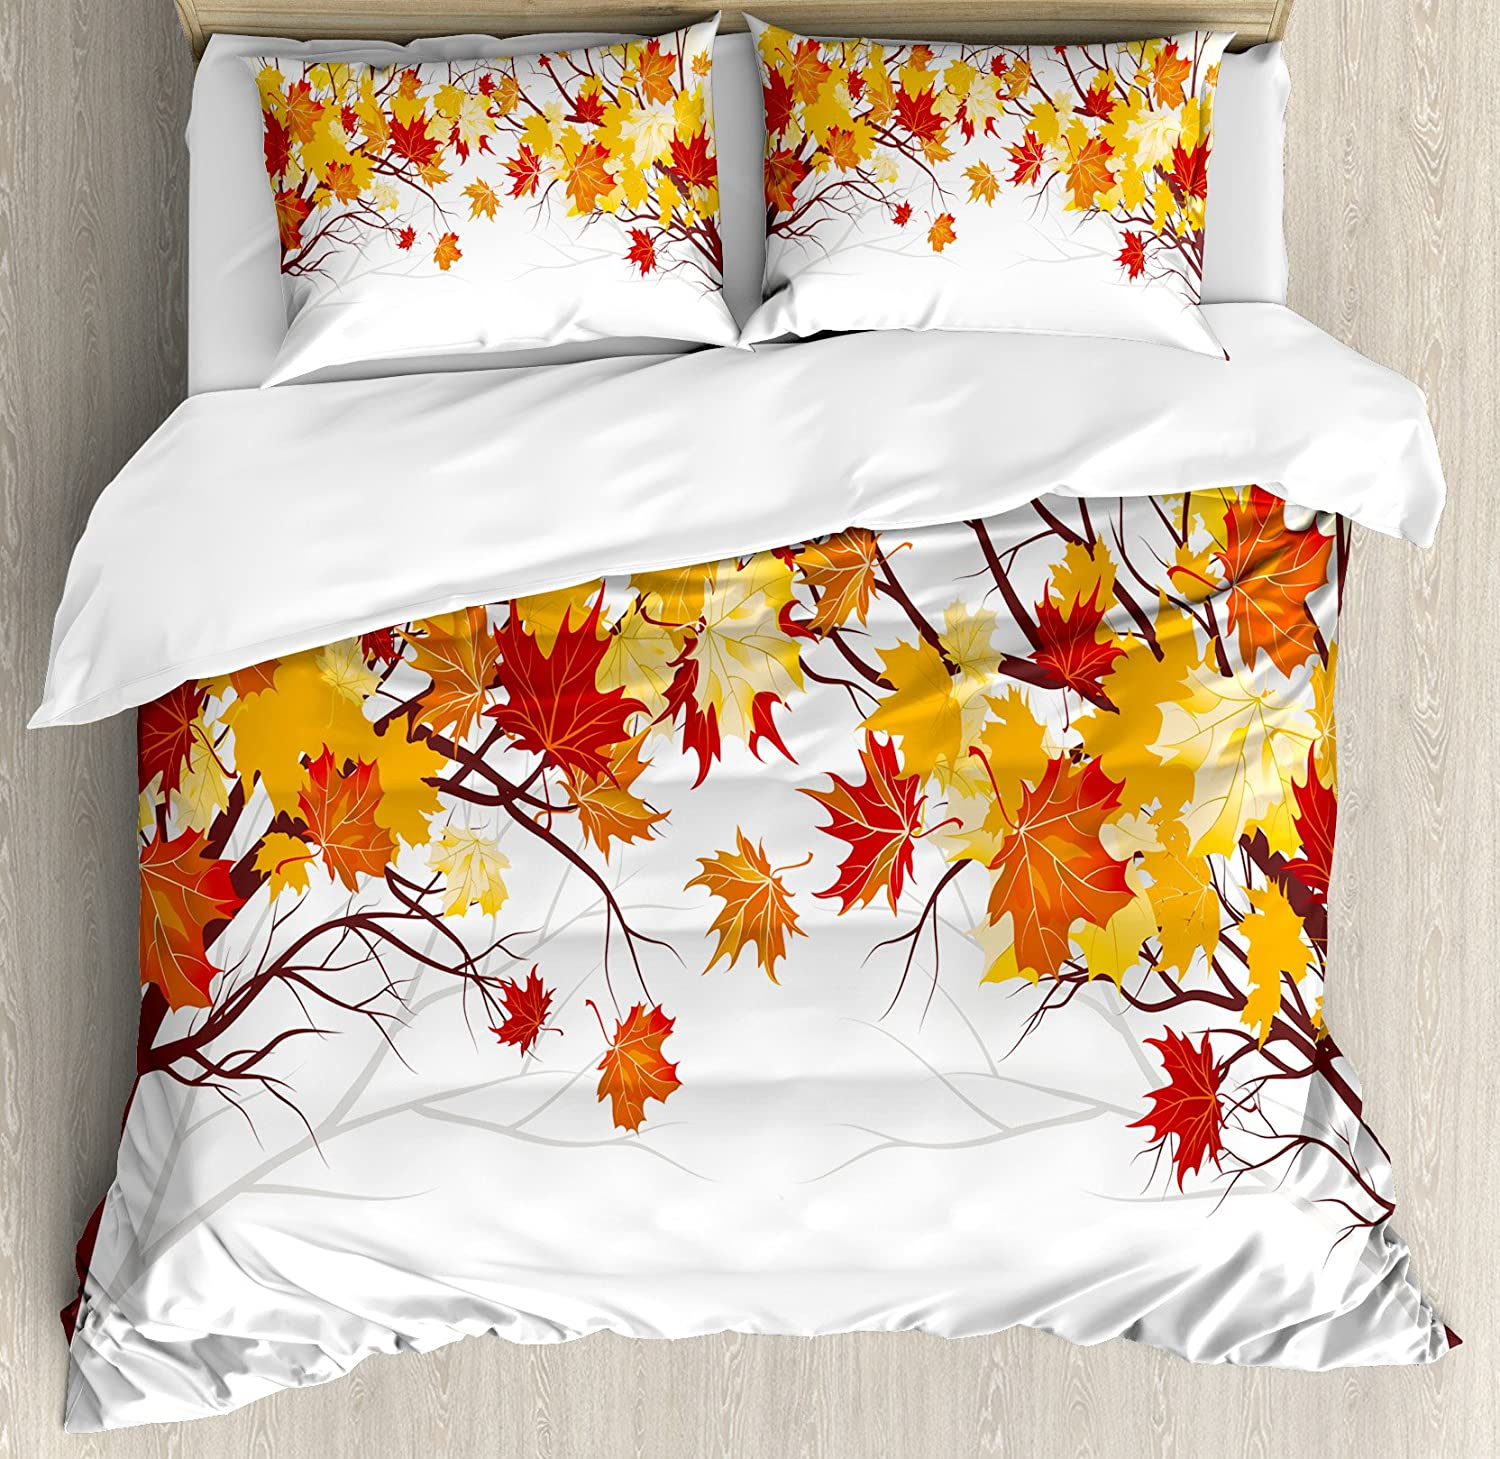 Ambesonne Fall Duvet Cover Set, Image of Canadian Maple Tree Leaves in Autumn Season with Soft Reflection Effects, Decorative 3 Piece Bedding Set with 2 Pillow Shams, King Size, Orange White